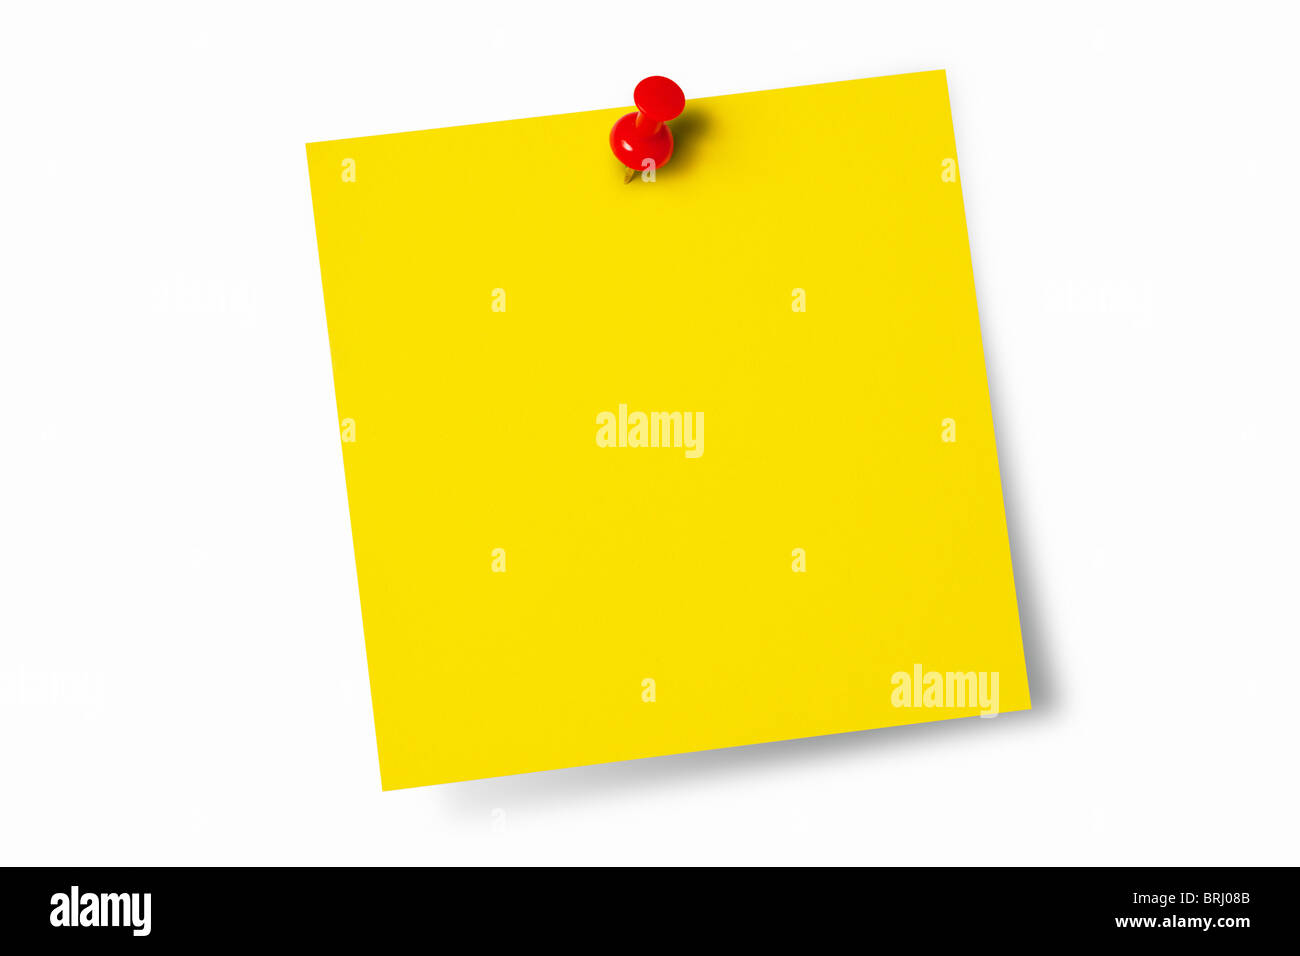 Yellow Post-it with Push Pin - Stock Image